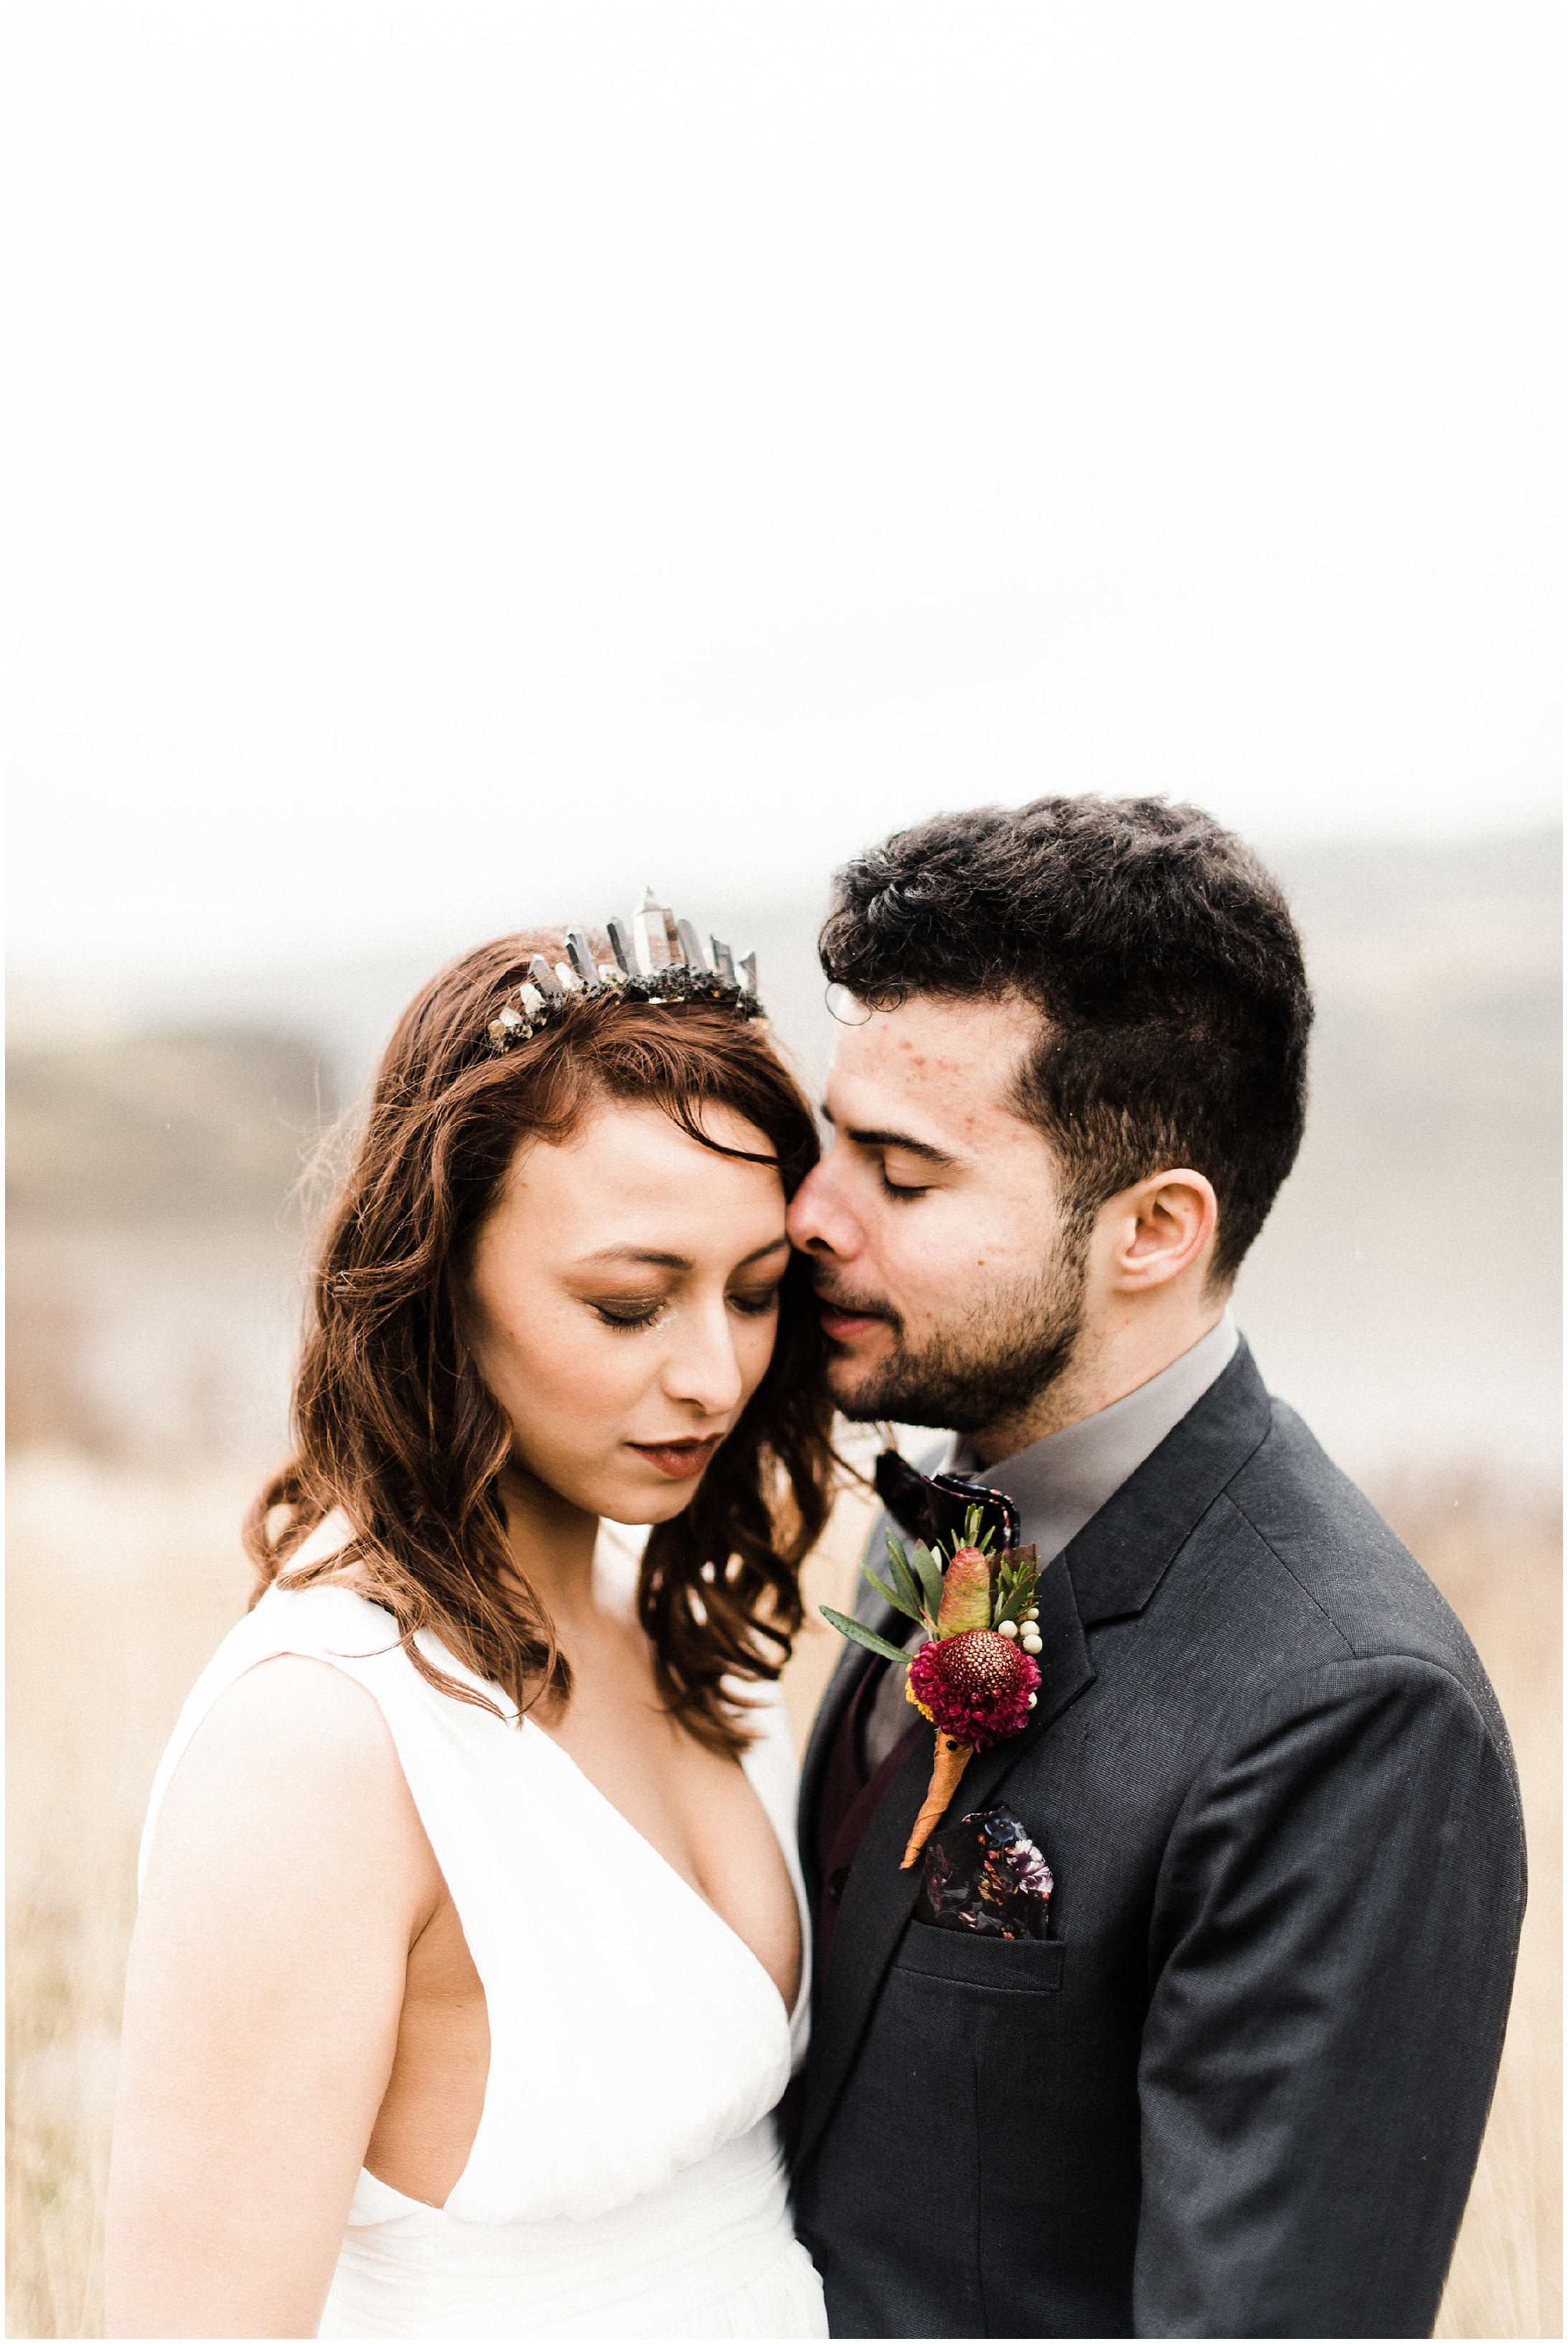 Photo of bride and groom in a styled elopement shoot in Lyons Ferry State Park by Forthright Photo